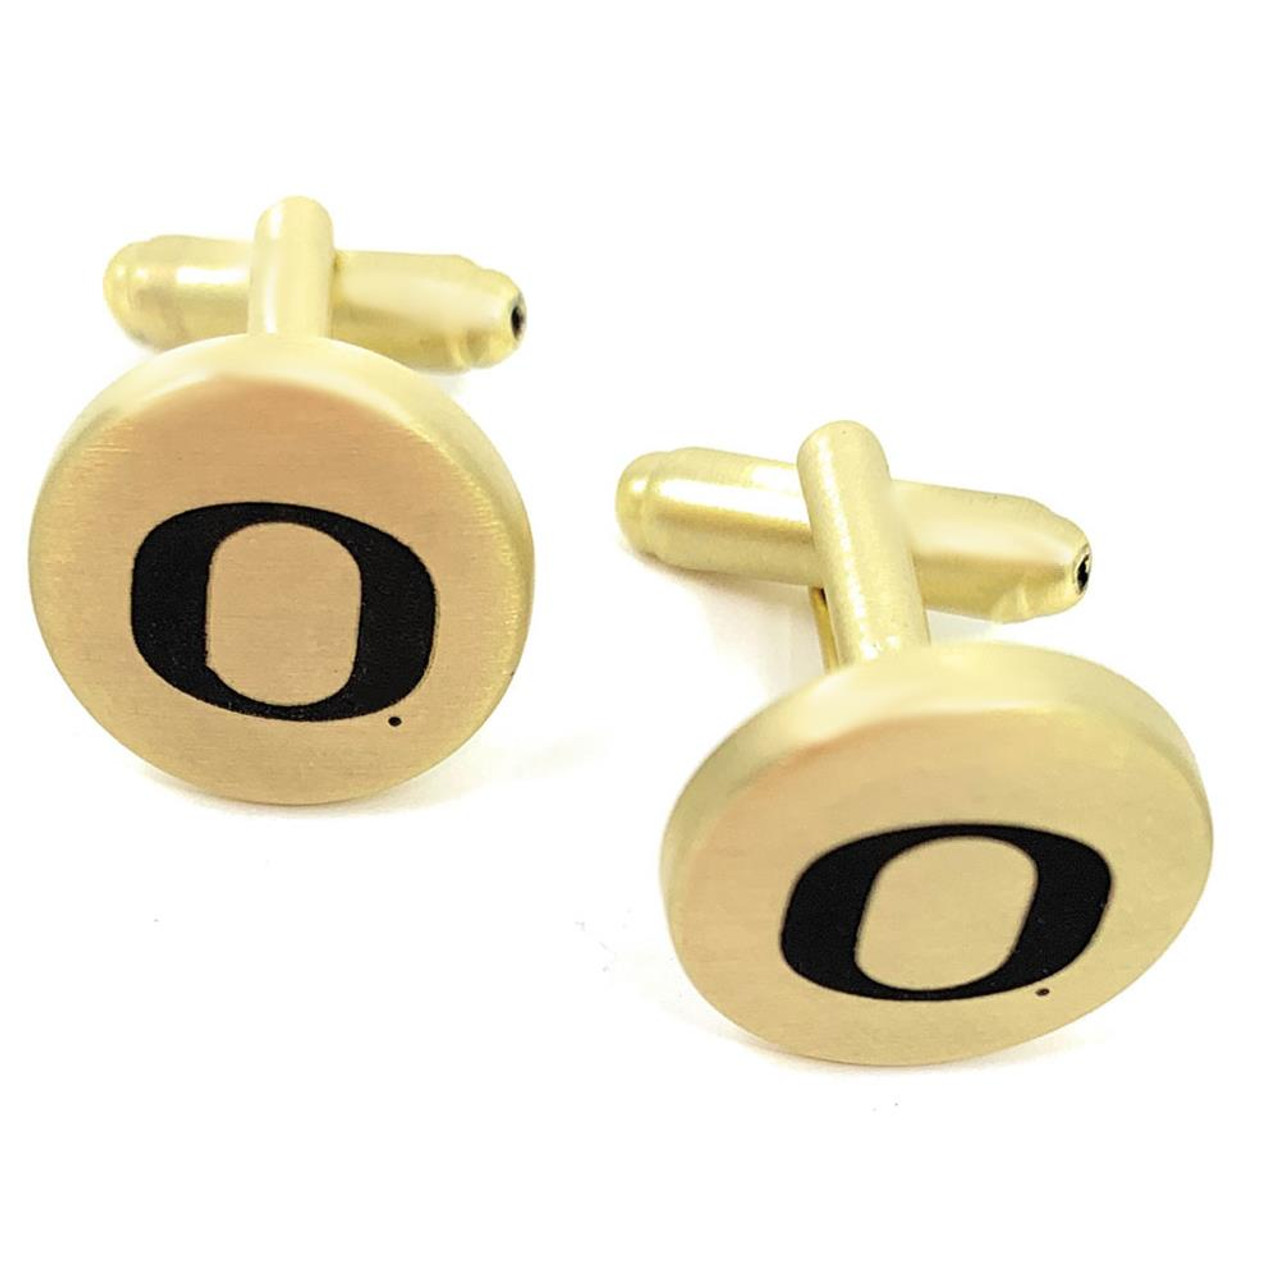 University of Oregon Ducks Cuff Links Brushed Gold Cufflink Set